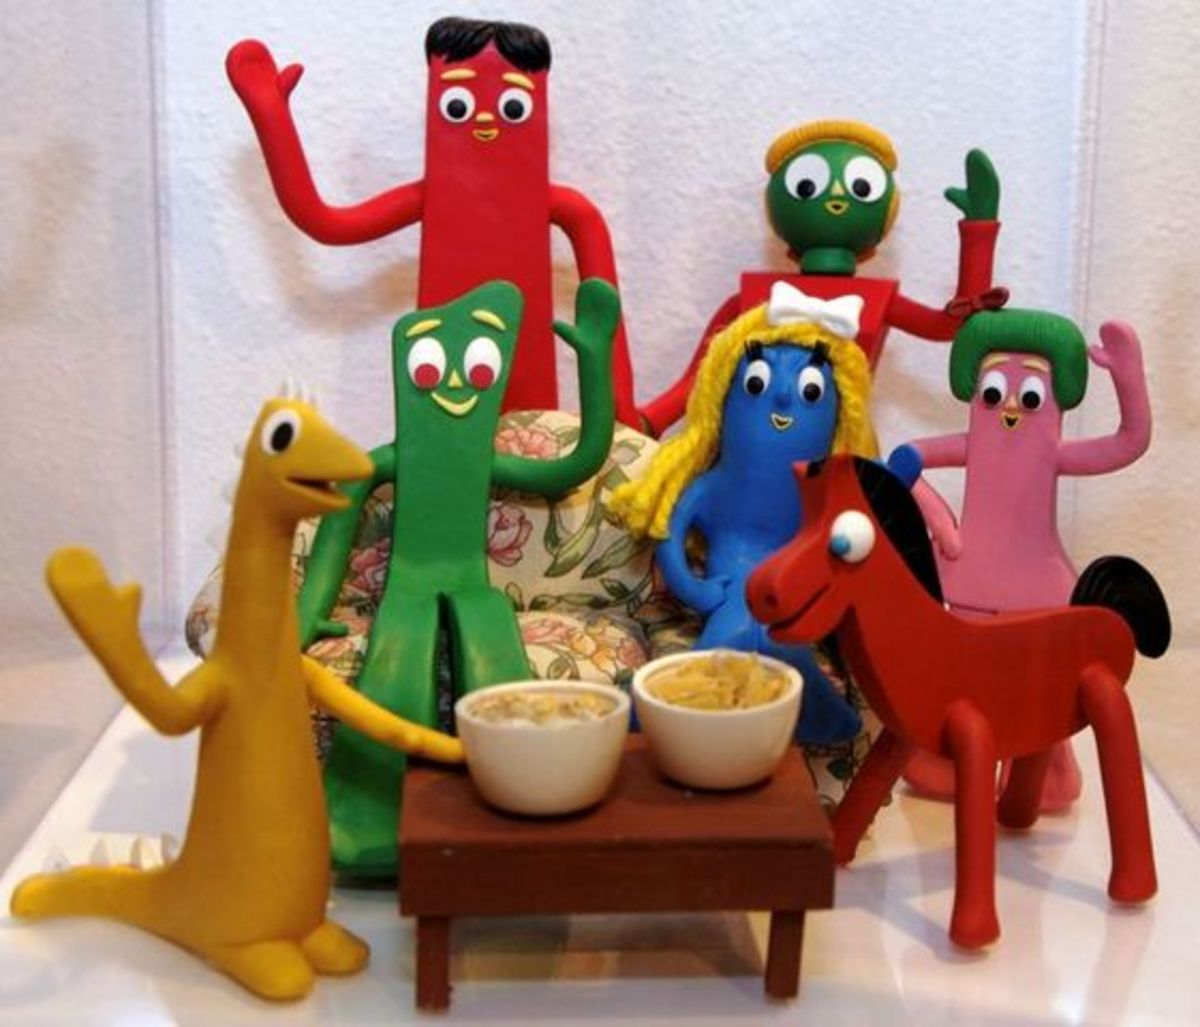 Gumby with his family and friends